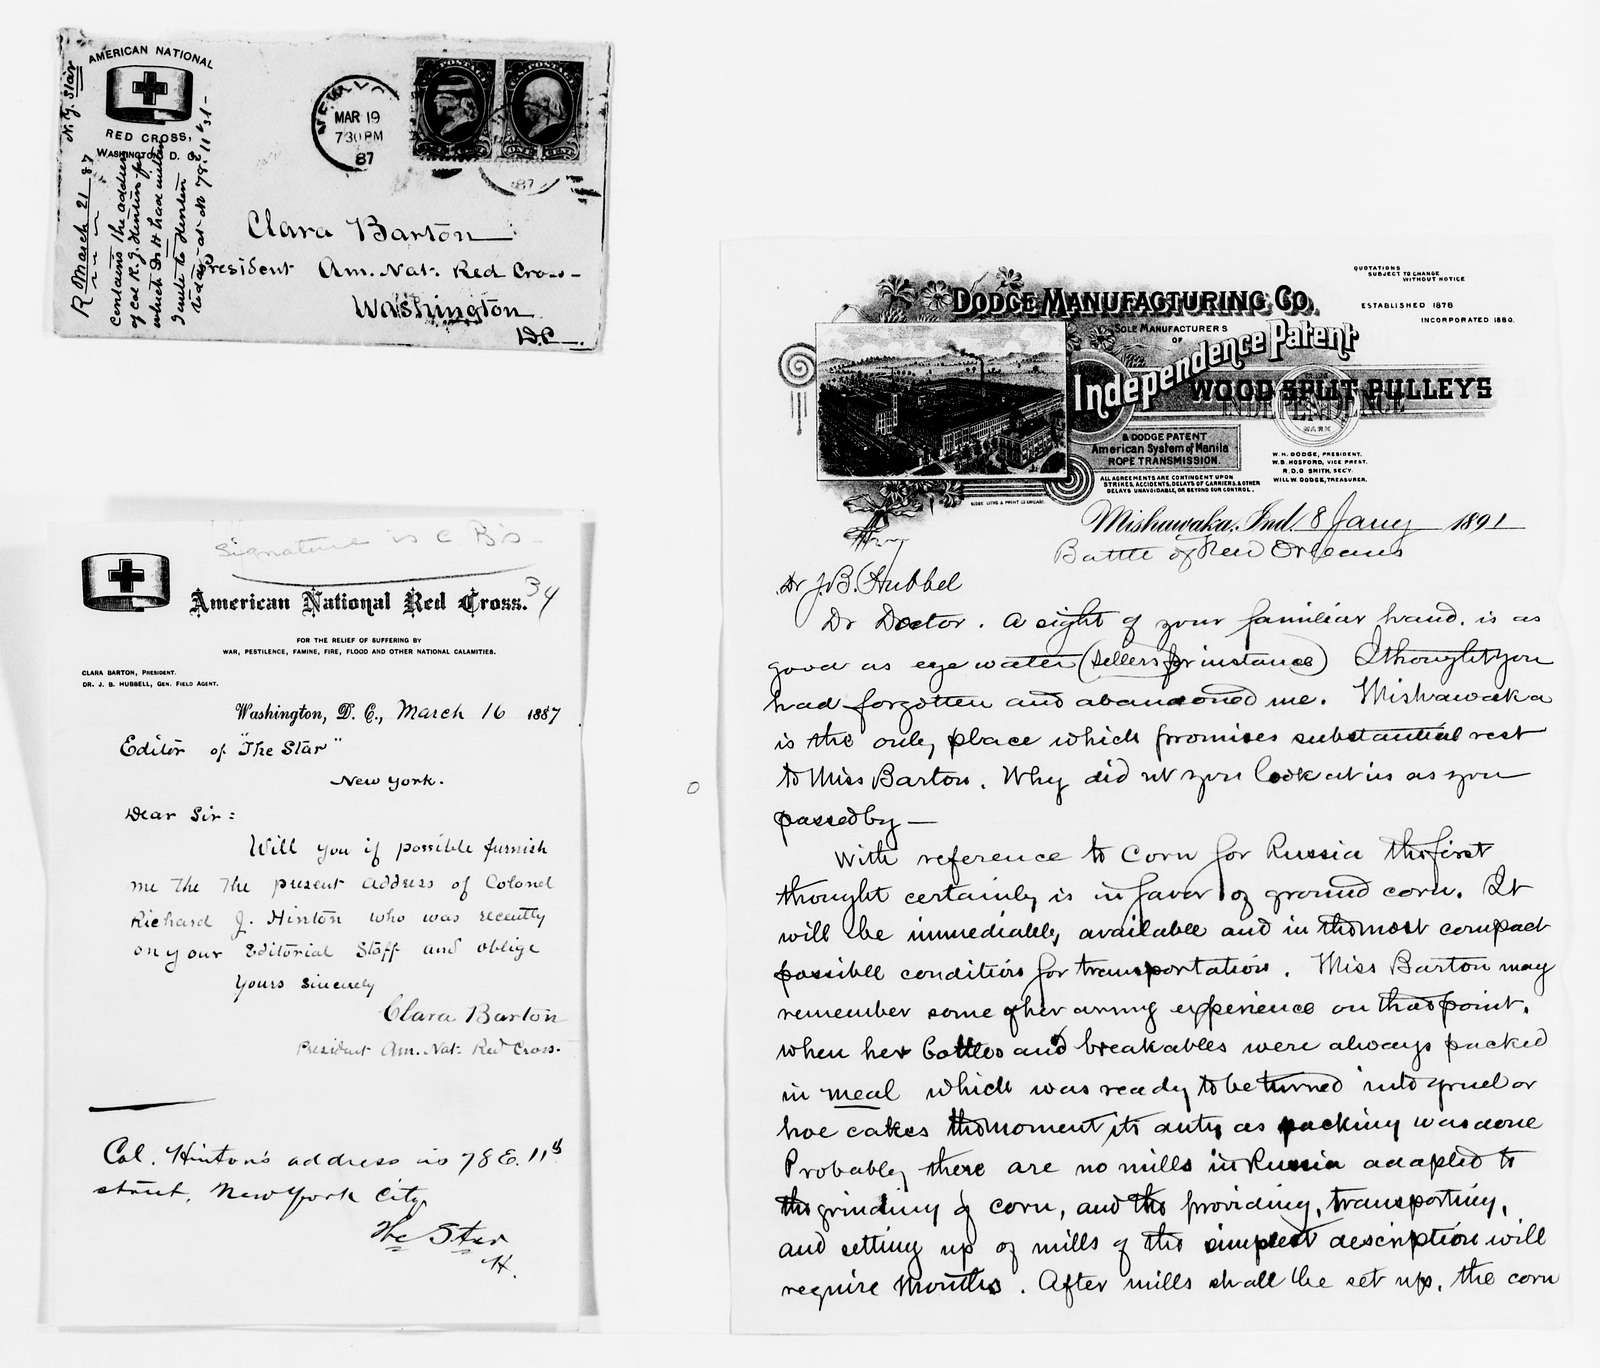 Clara Barton Papers: Red Cross File, 1863-1957; American National Red Cross, 1878-1957; Relief operations; Russia; Correspondence; 1887, Mar.-1892, Mar